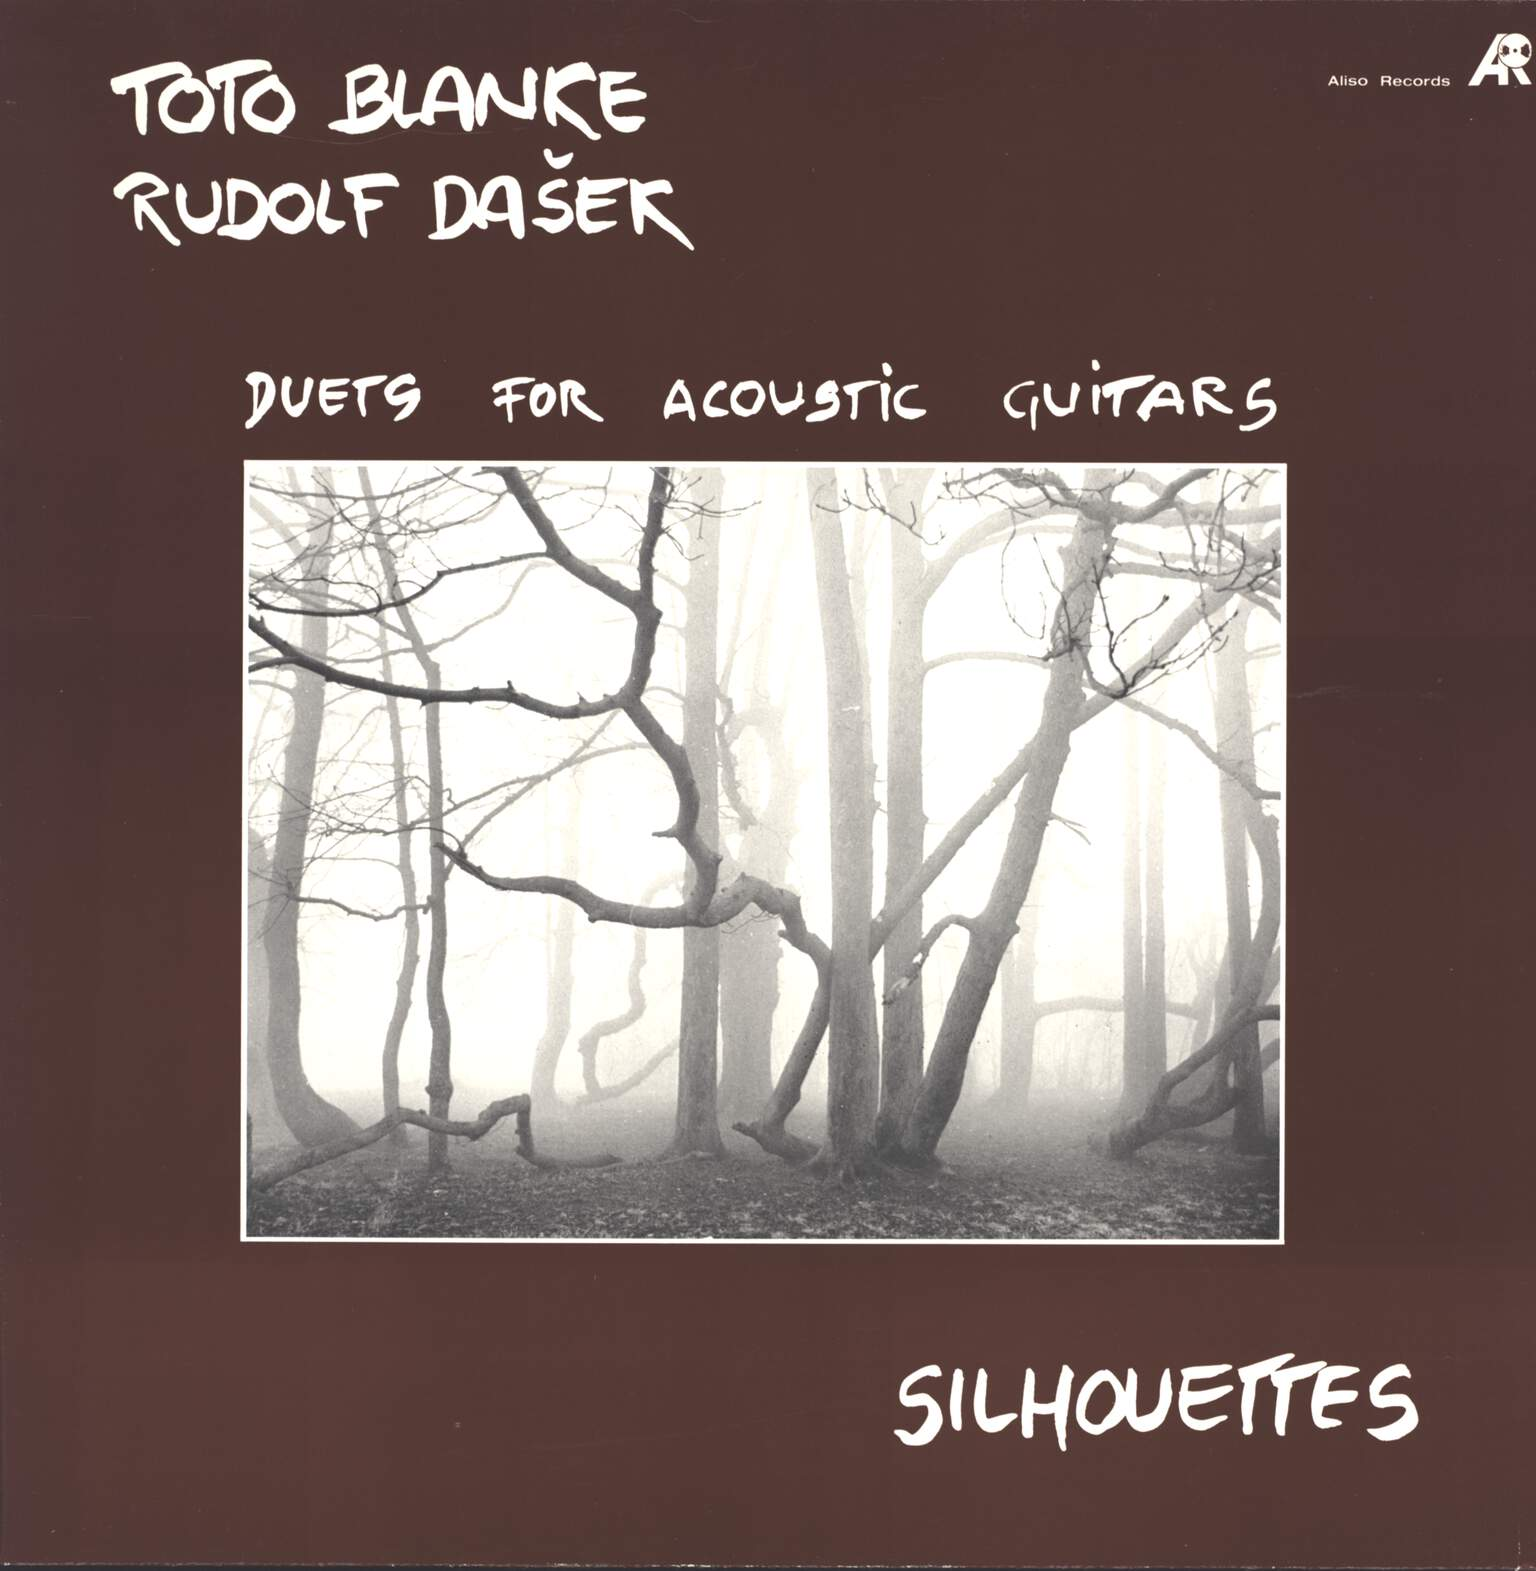 Toto Blanke: Silhouettes - Duets For Acoustic Guitars, LP (Vinyl)